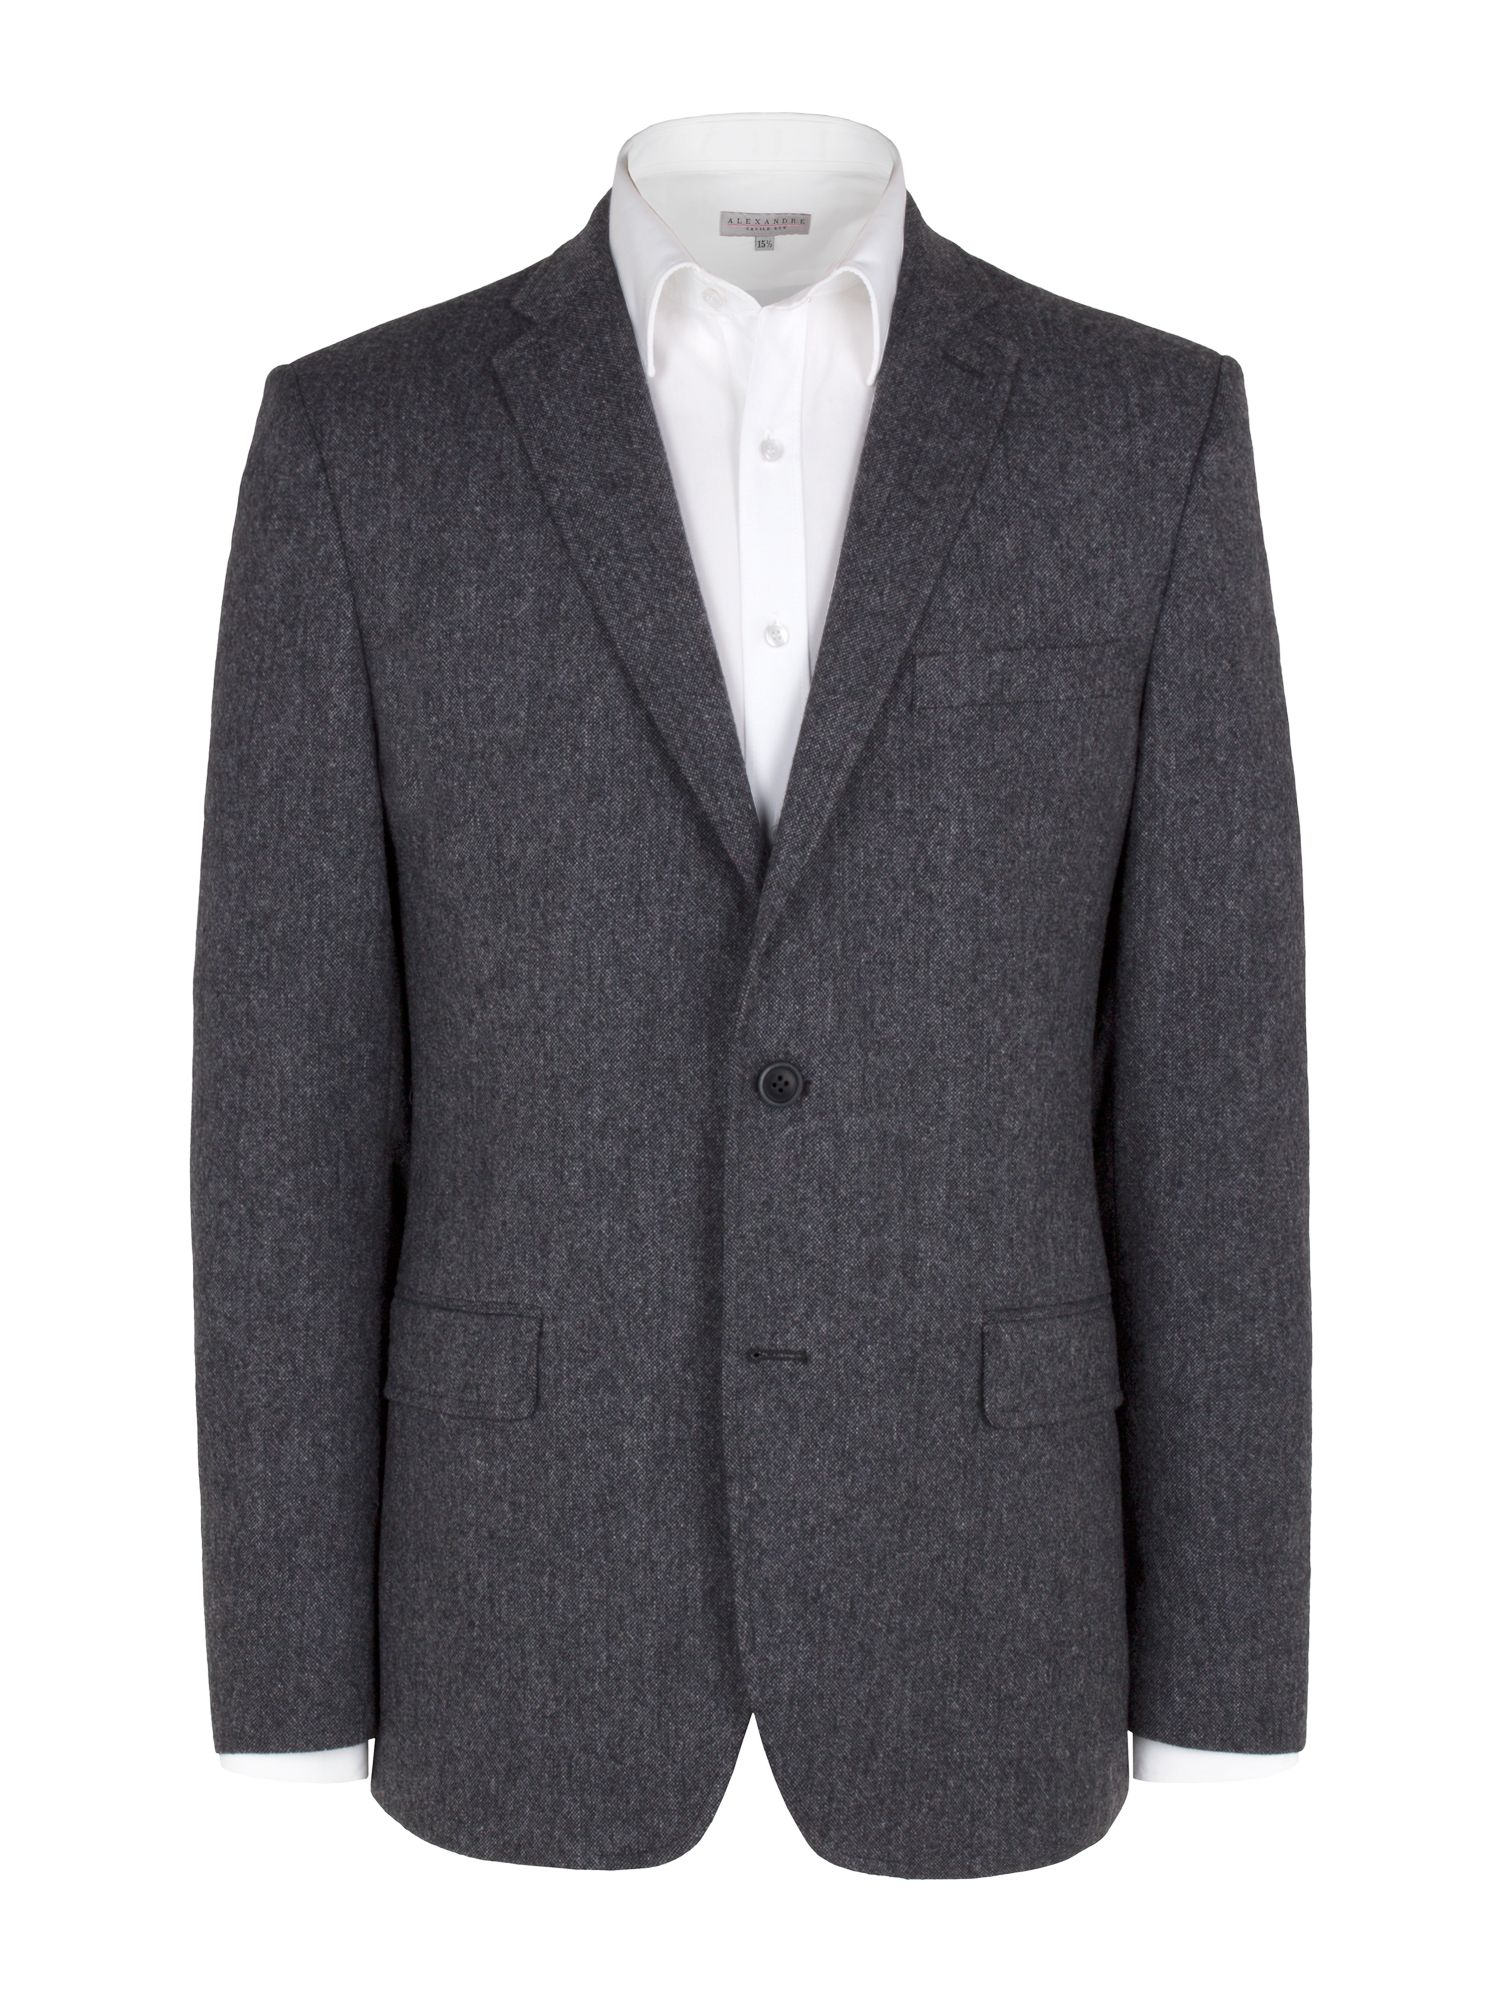 Grey donnegal blazer